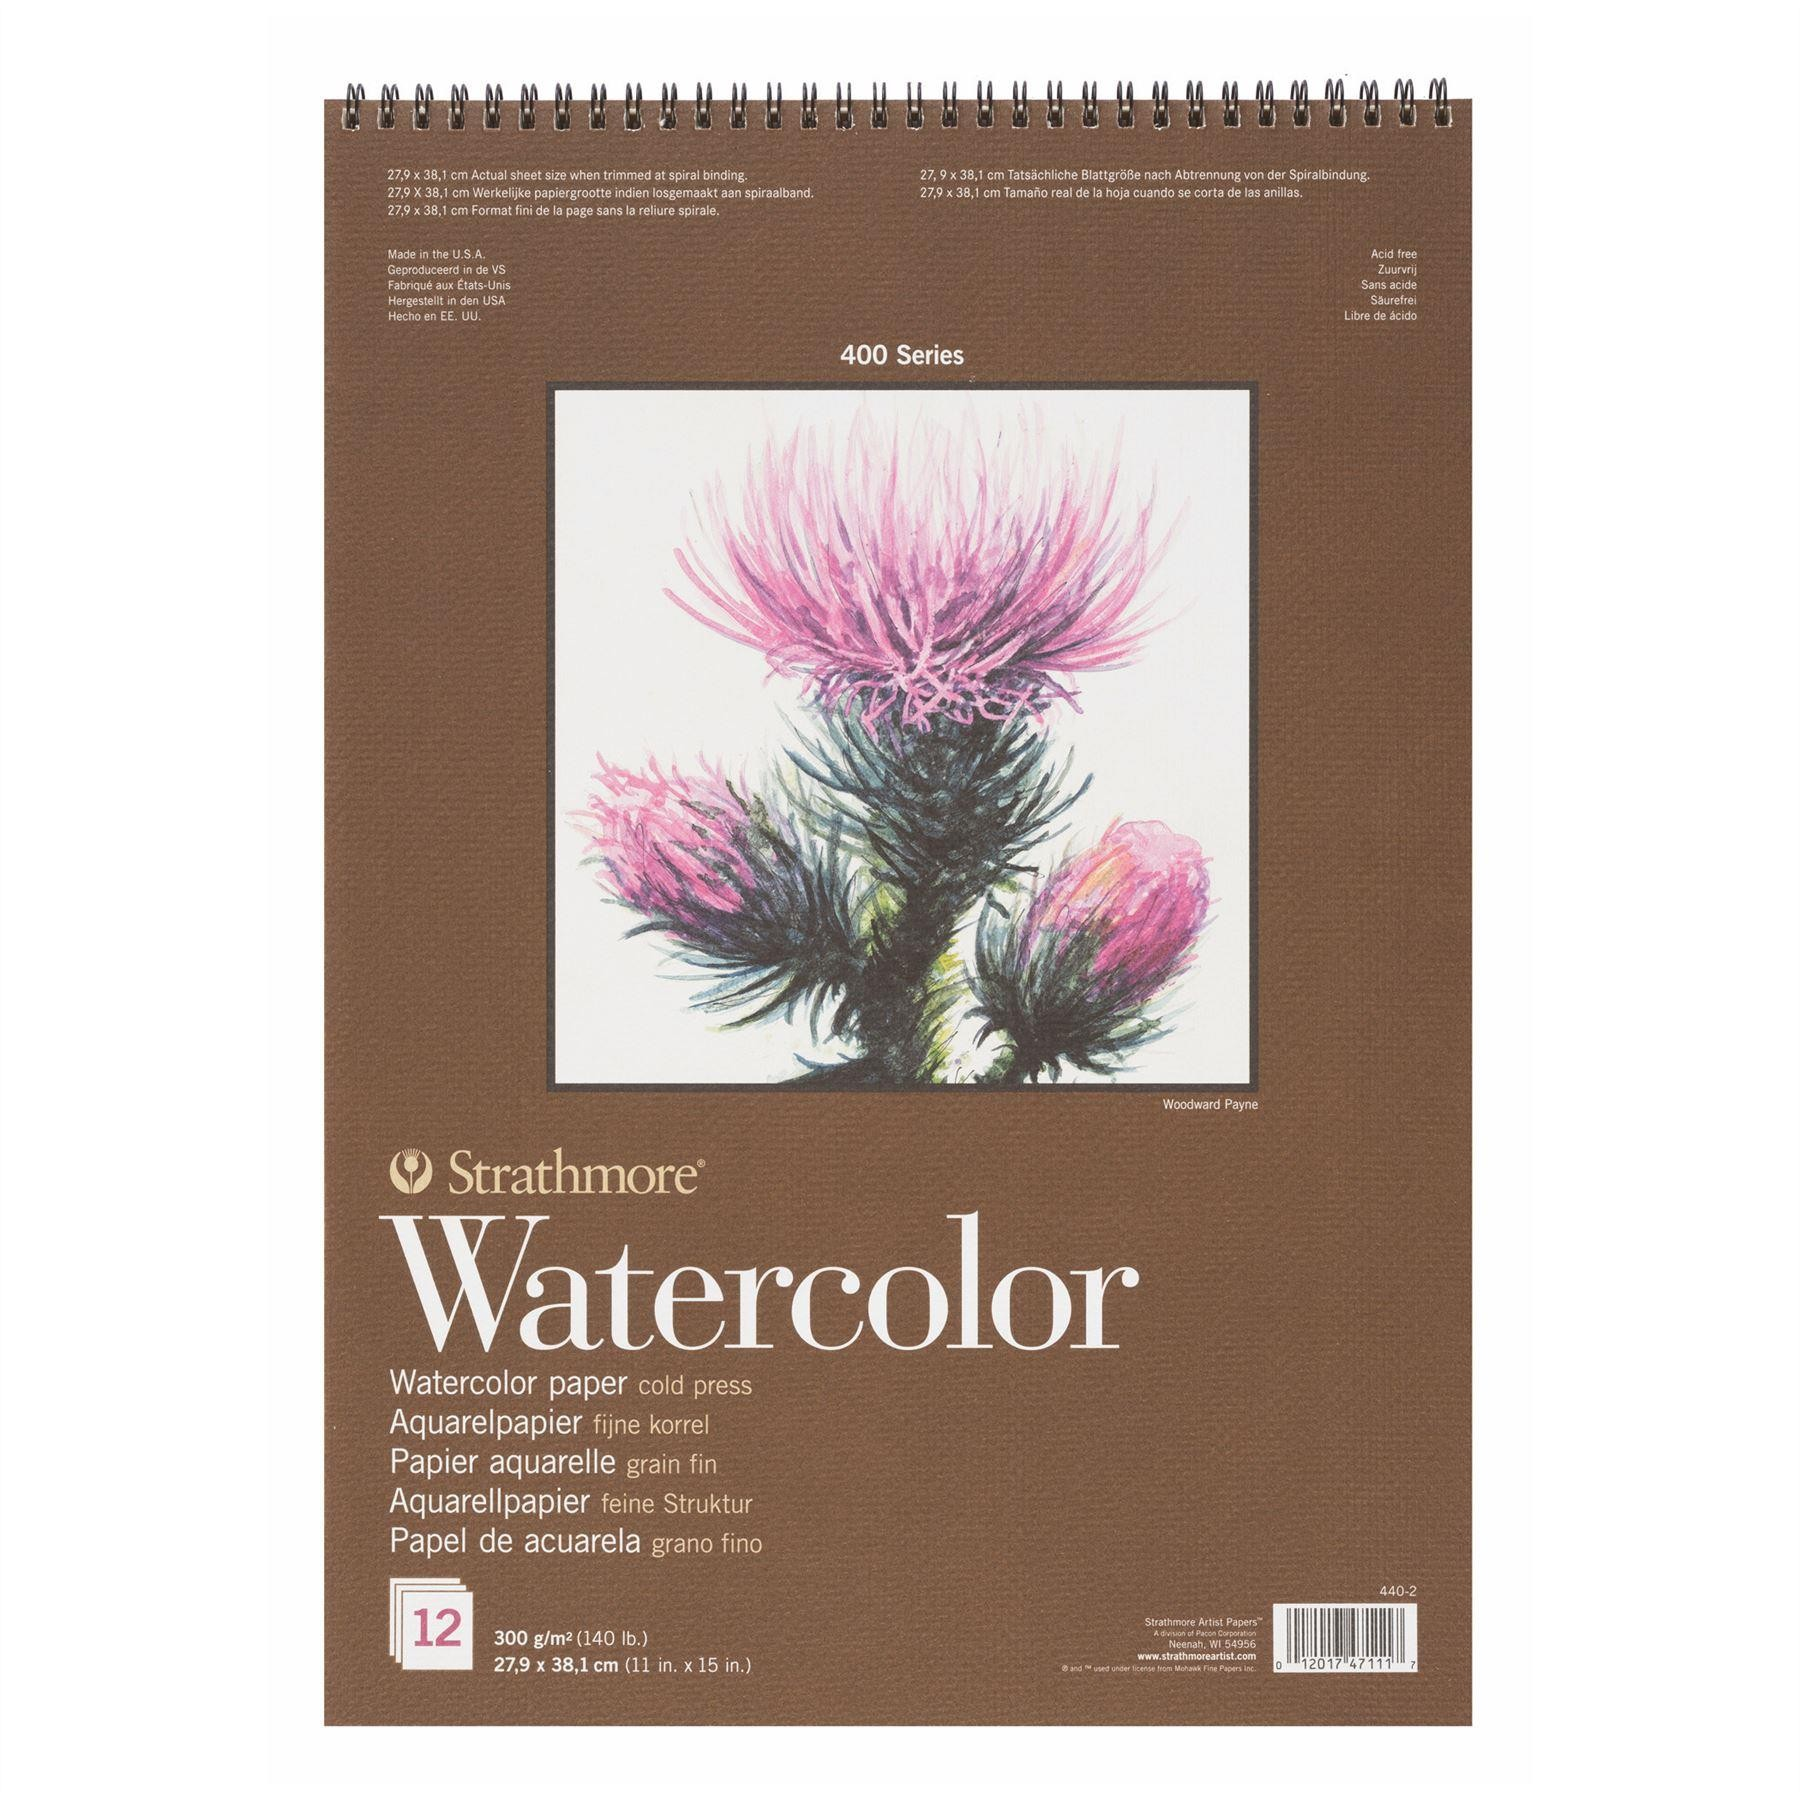 Strathmore 400 watercolour pad 27,9 x 38,1 12 sheets 300gsm